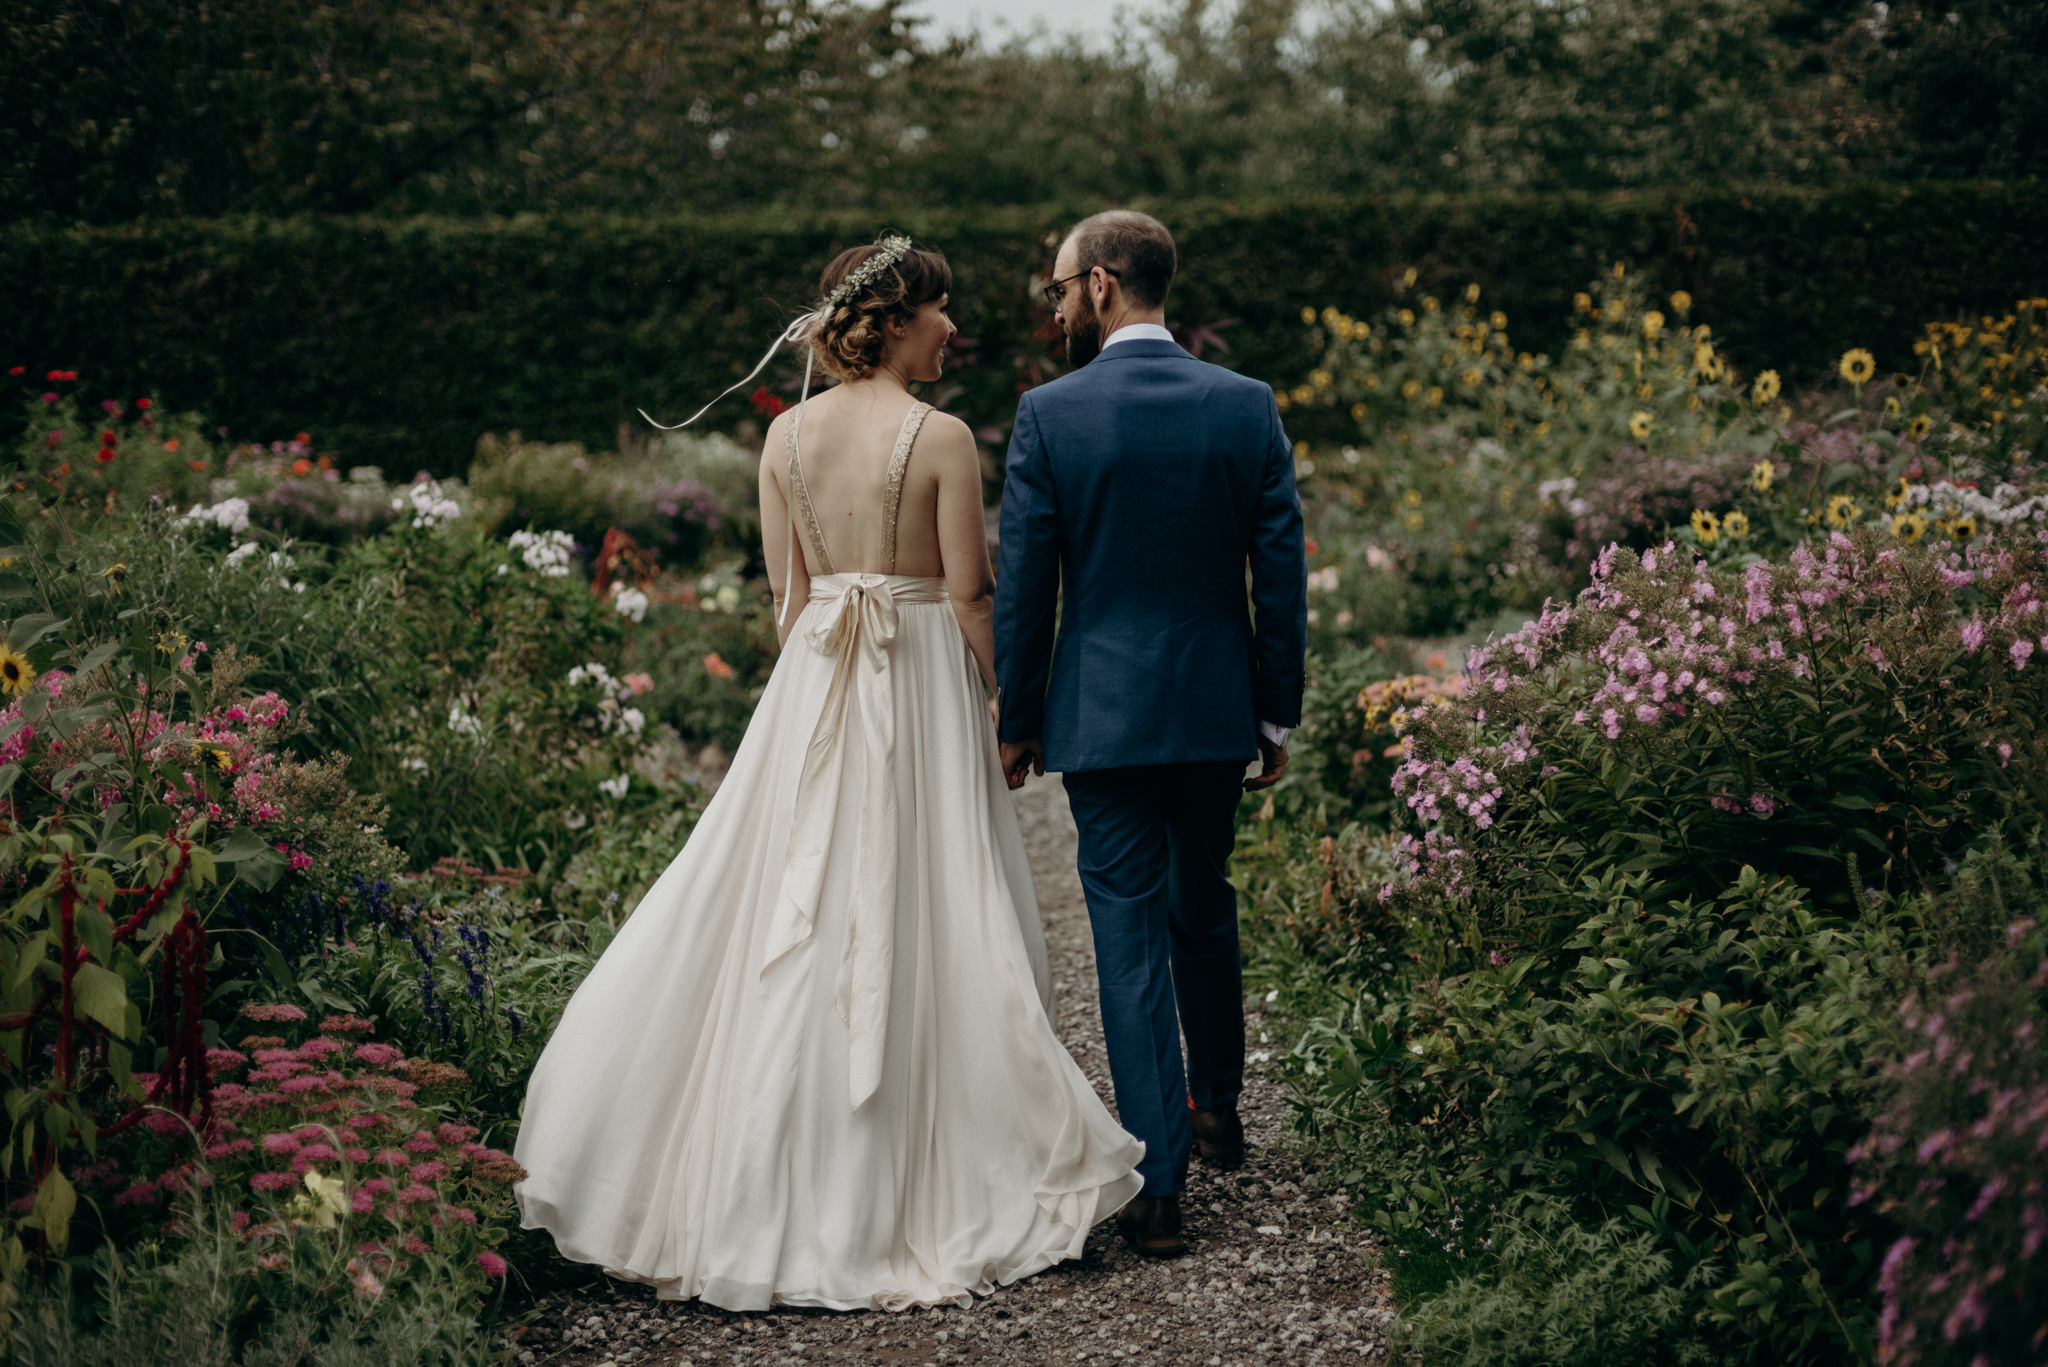 bride and groom walking in flower gardens